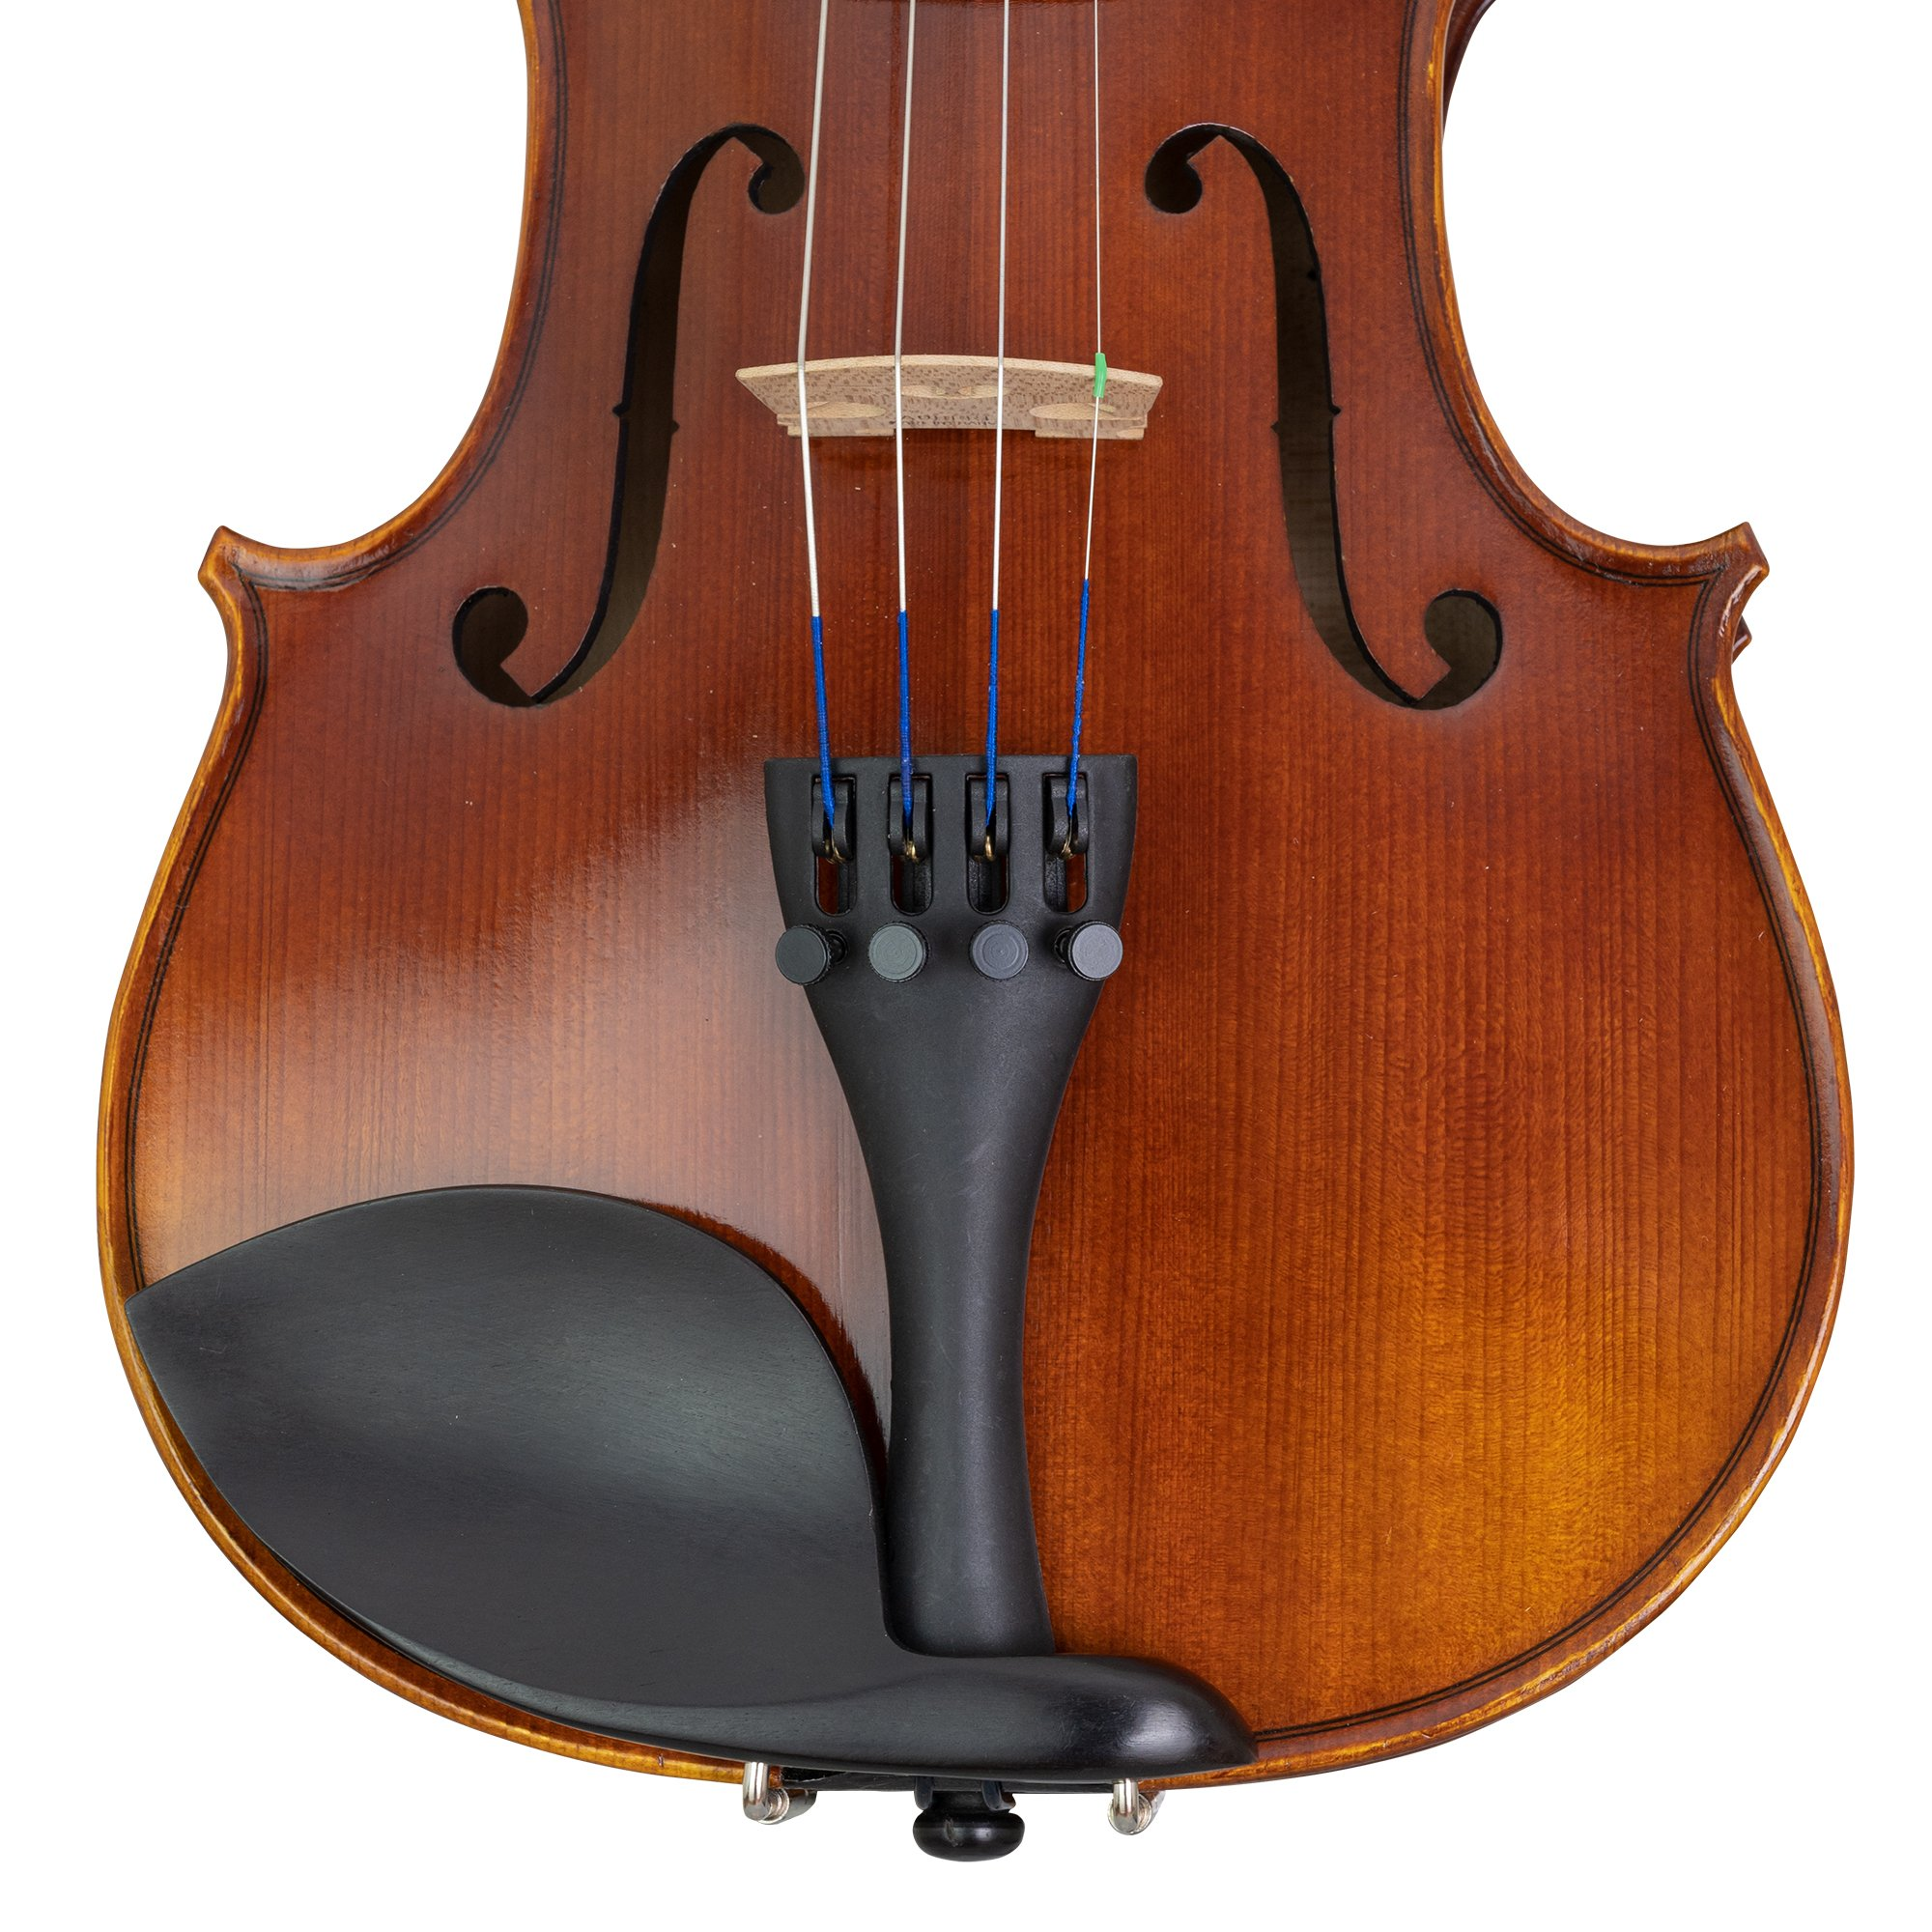 Fractional Louis Carpini G2 Violin Outfit in action